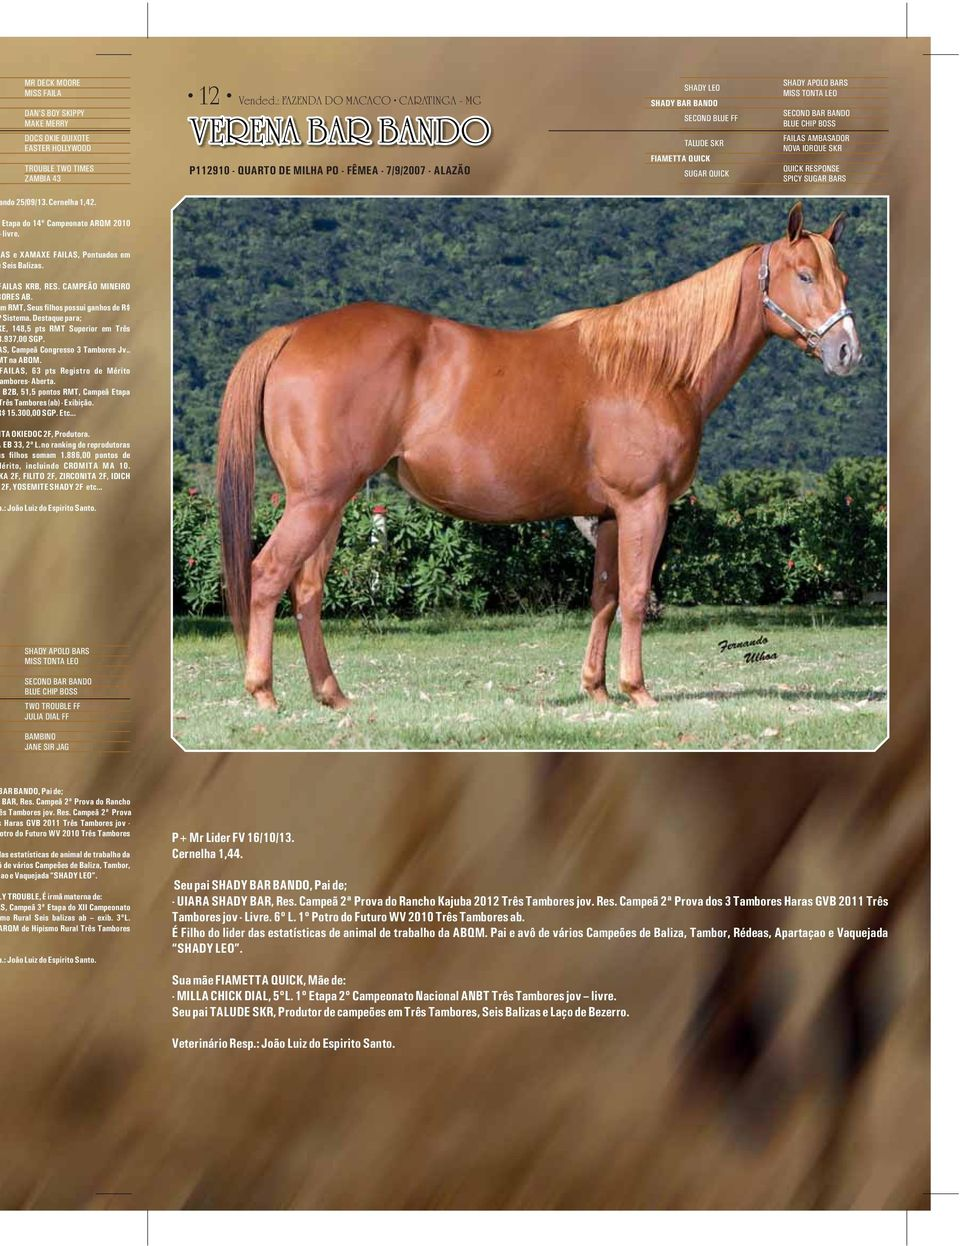 BARS MISS TONTA LEO SECOND BAR BANDO BLUE CHIP BOSS FAILAS AMBASADOR NOVA IORQUE SKR QUICK RESPONSE SPICY SUGAR BARS ndo 25/09/13. Cernelha 1,42. Etapa do 14º Campeonato ARQM 2010 livre.